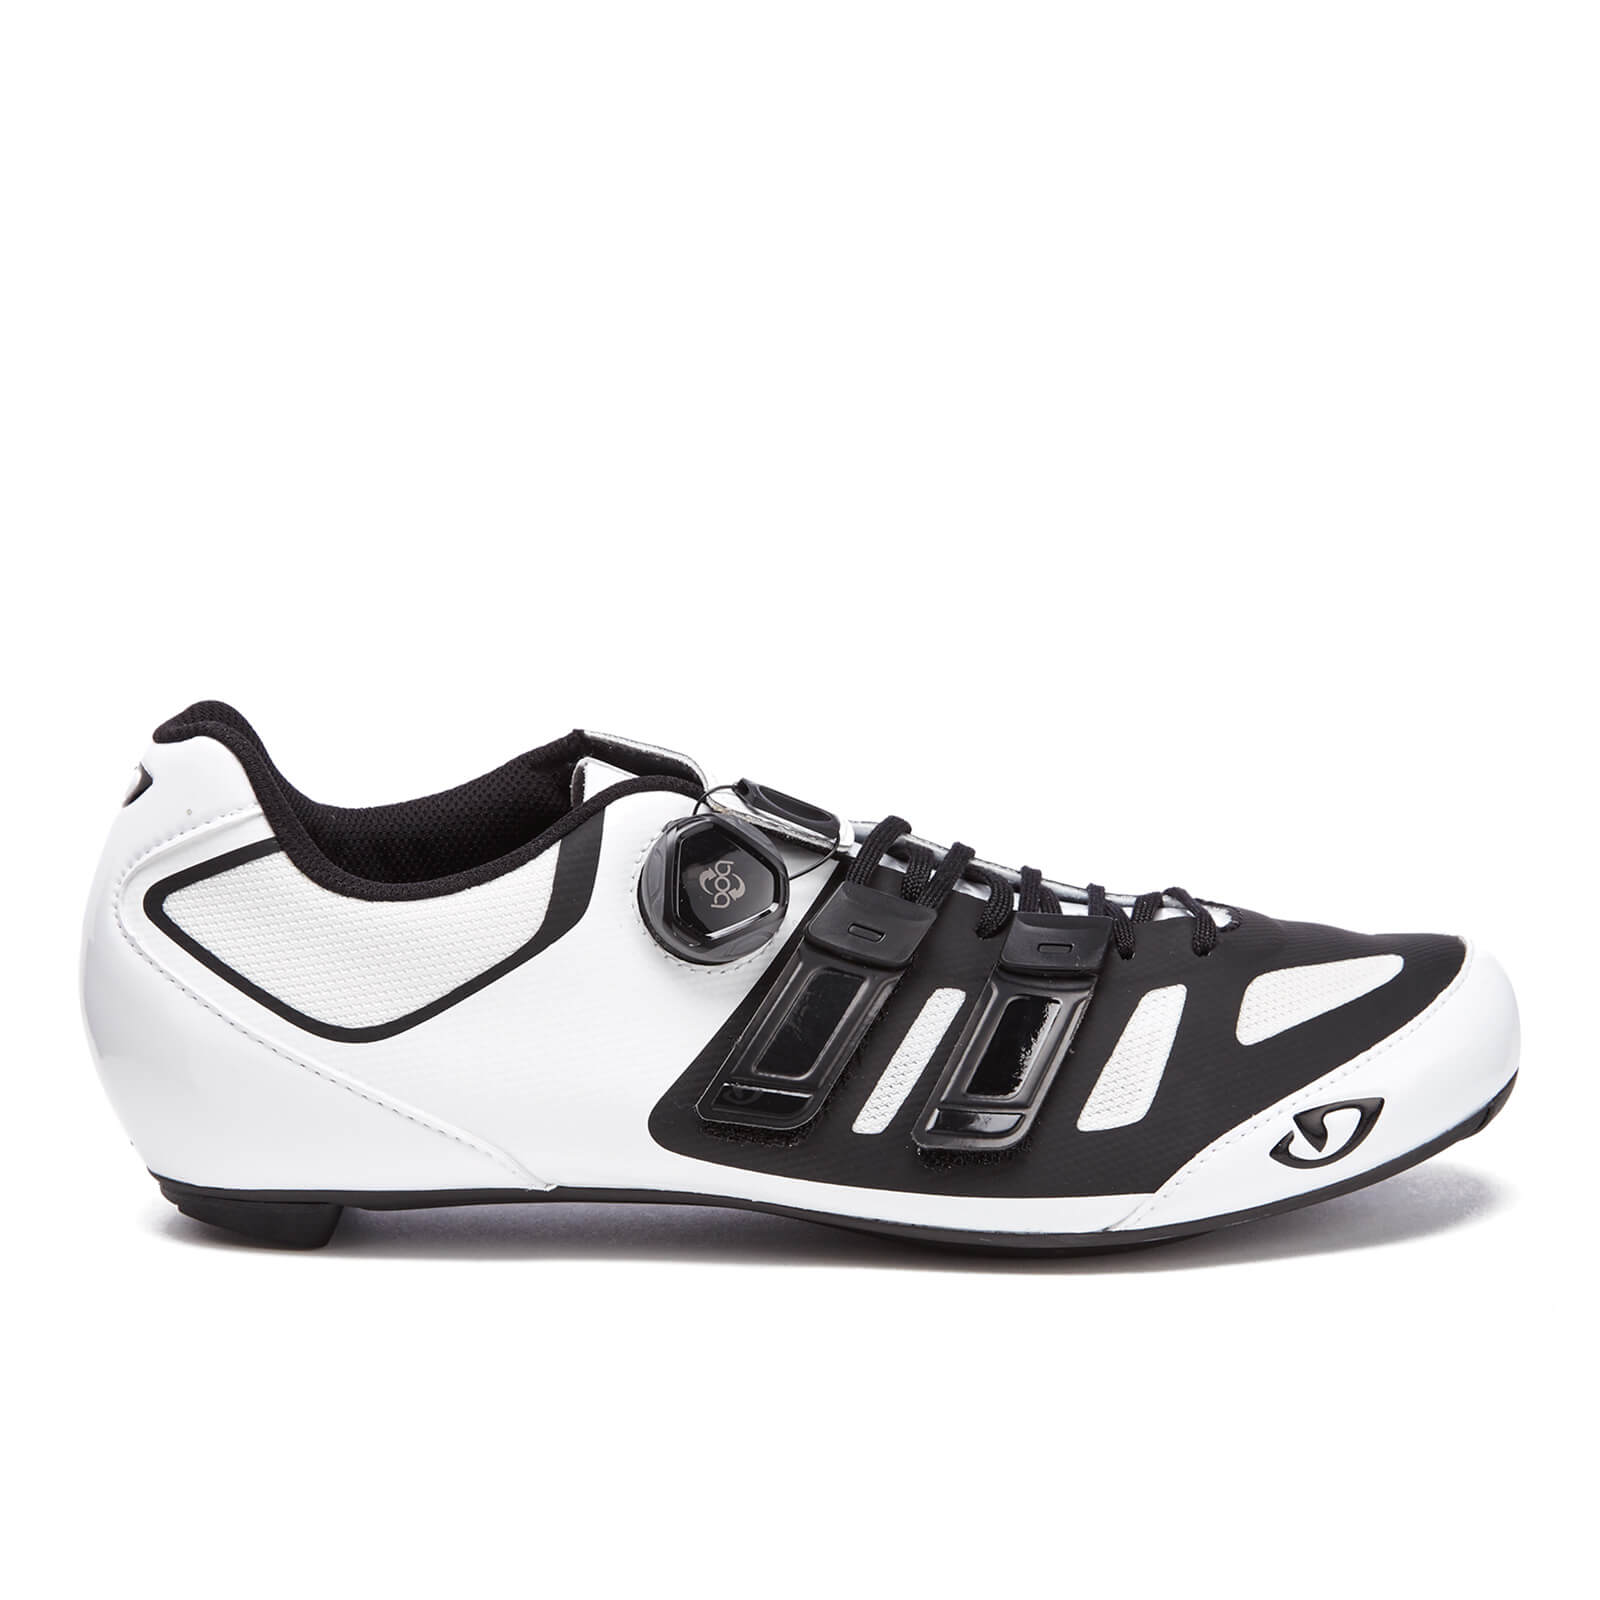 Giro Sentrie Techlace Road Cycling Shoes - White